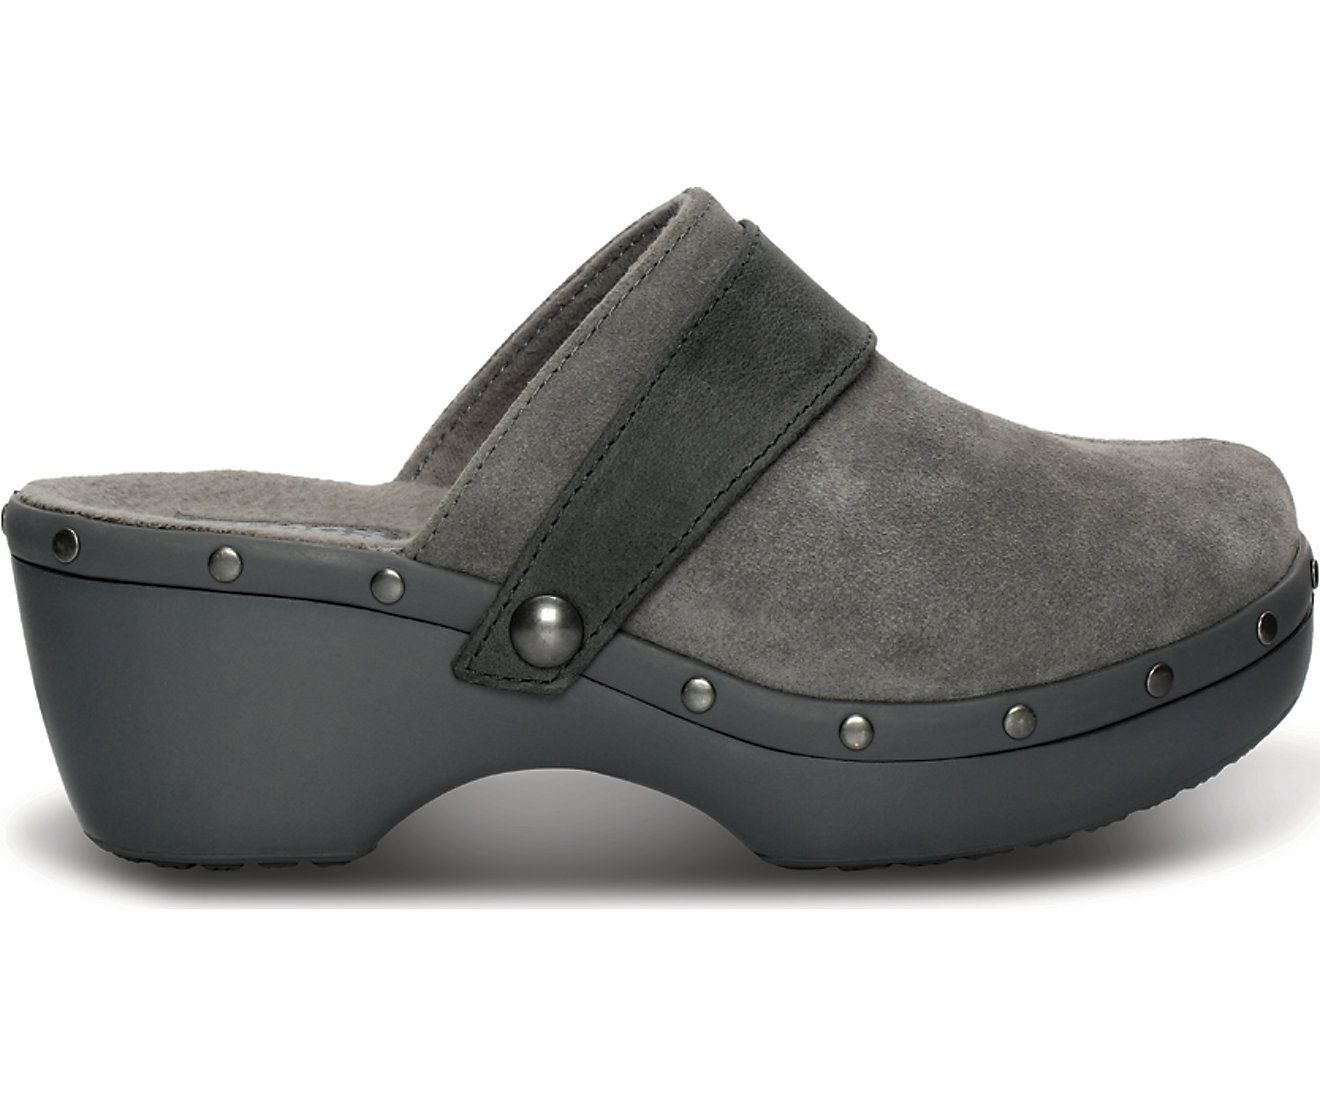 37e0520f0 Women s Crocs Cobbler Studded Leather Clog